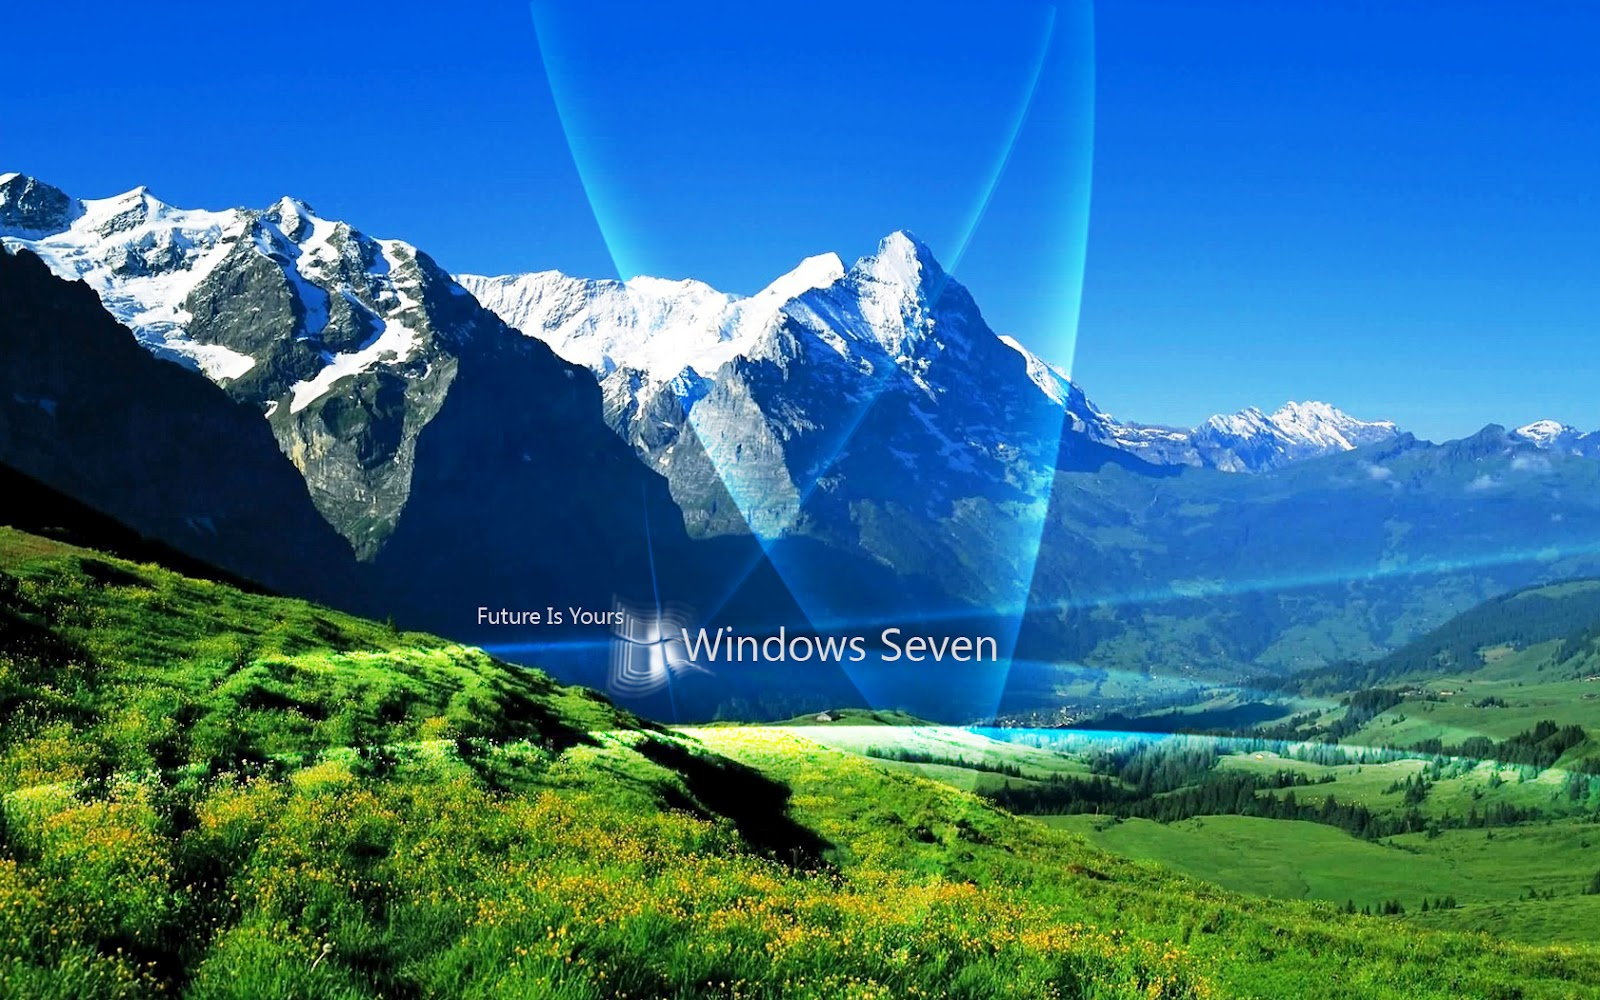 Windows 7 wallpapers beautiful backgrounds for windows 7 - Hd wallpapers for windows 7 1366x768 nature ...